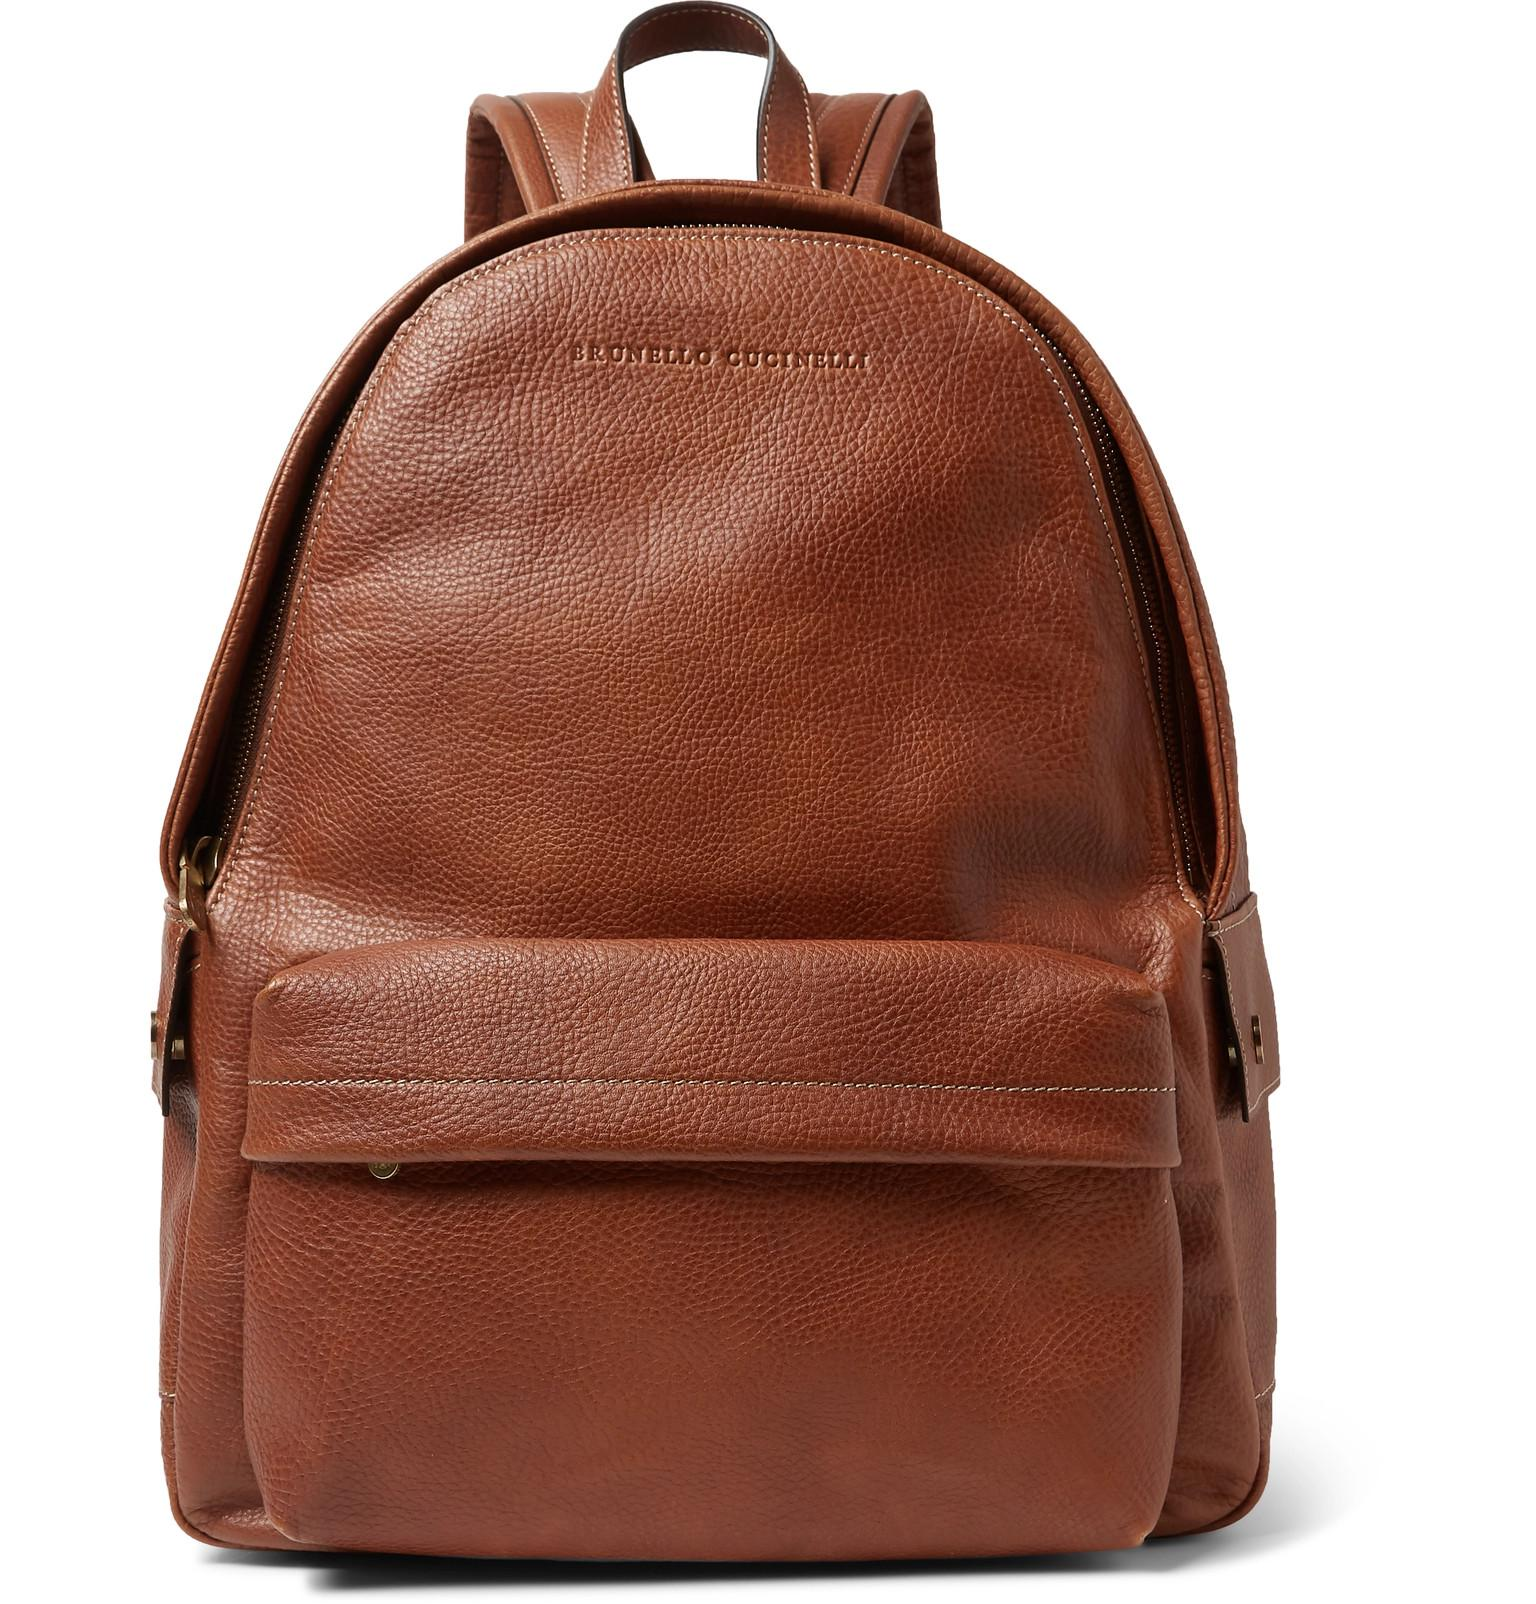 8f34eb2ee6 Lyst - Brunello Cucinelli Full-grain Leather Backpack in Brown for Men